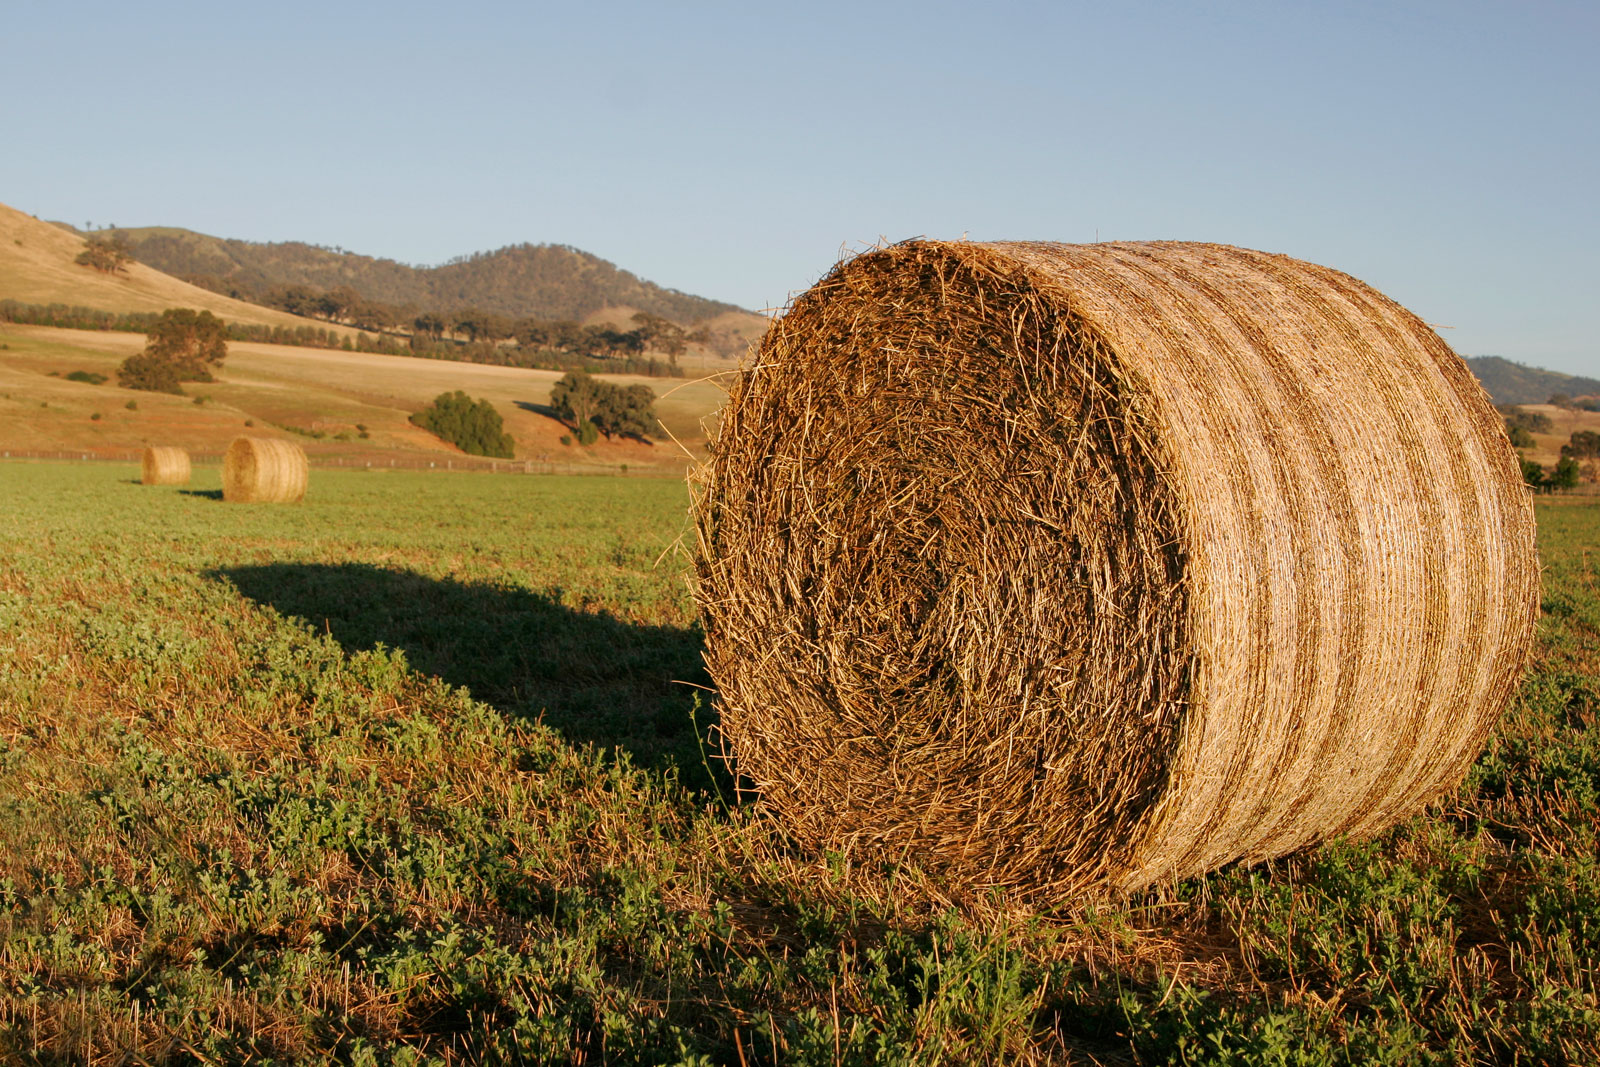 DONATE: Large Round Bale Hay